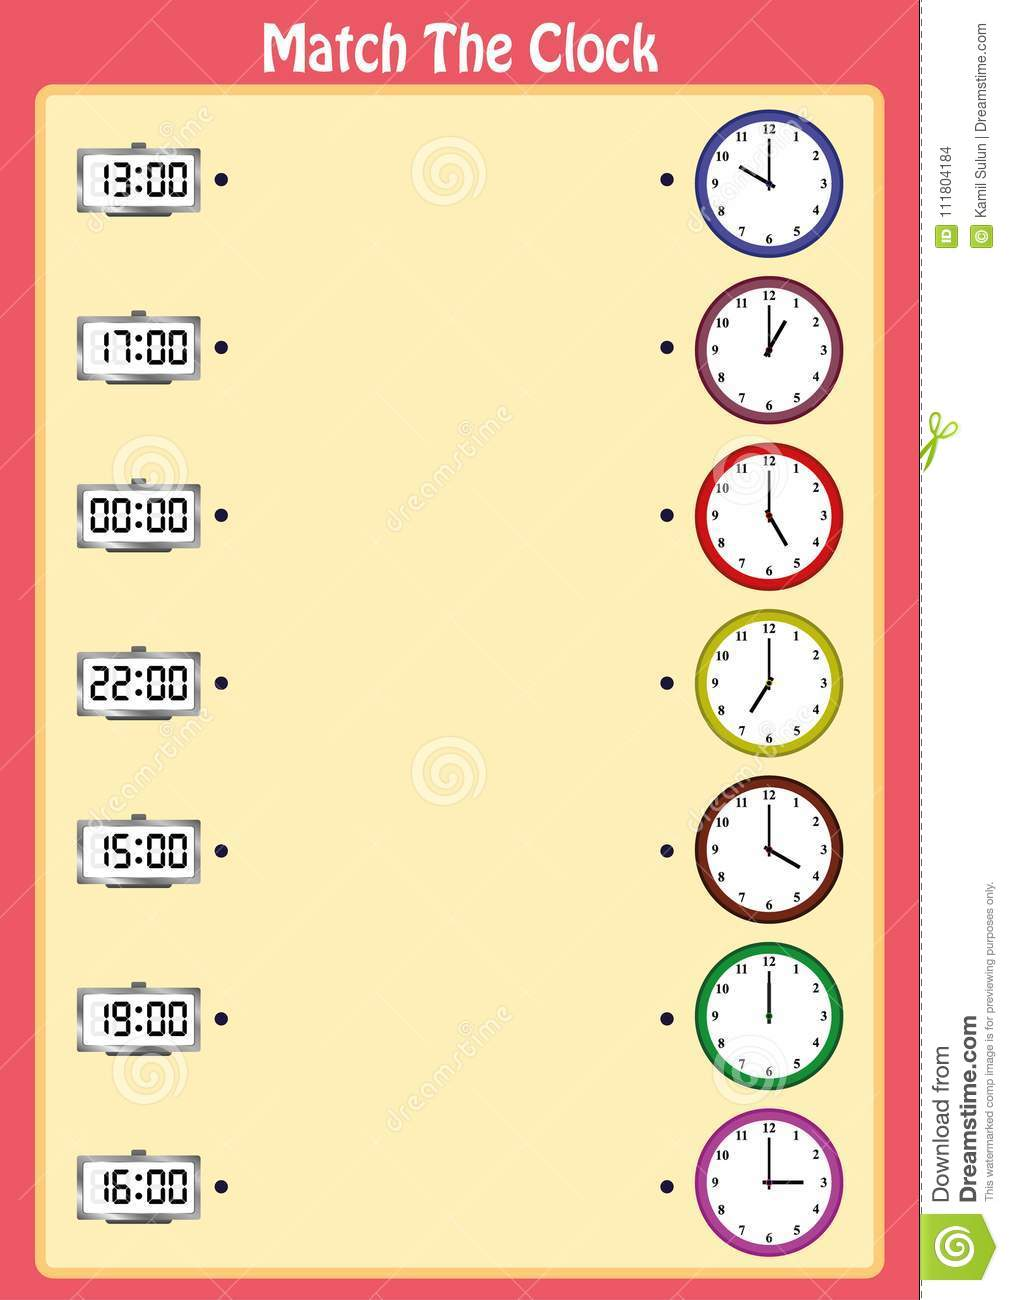 Match The Clocks Kids Learn To Read Analog Clocks With This